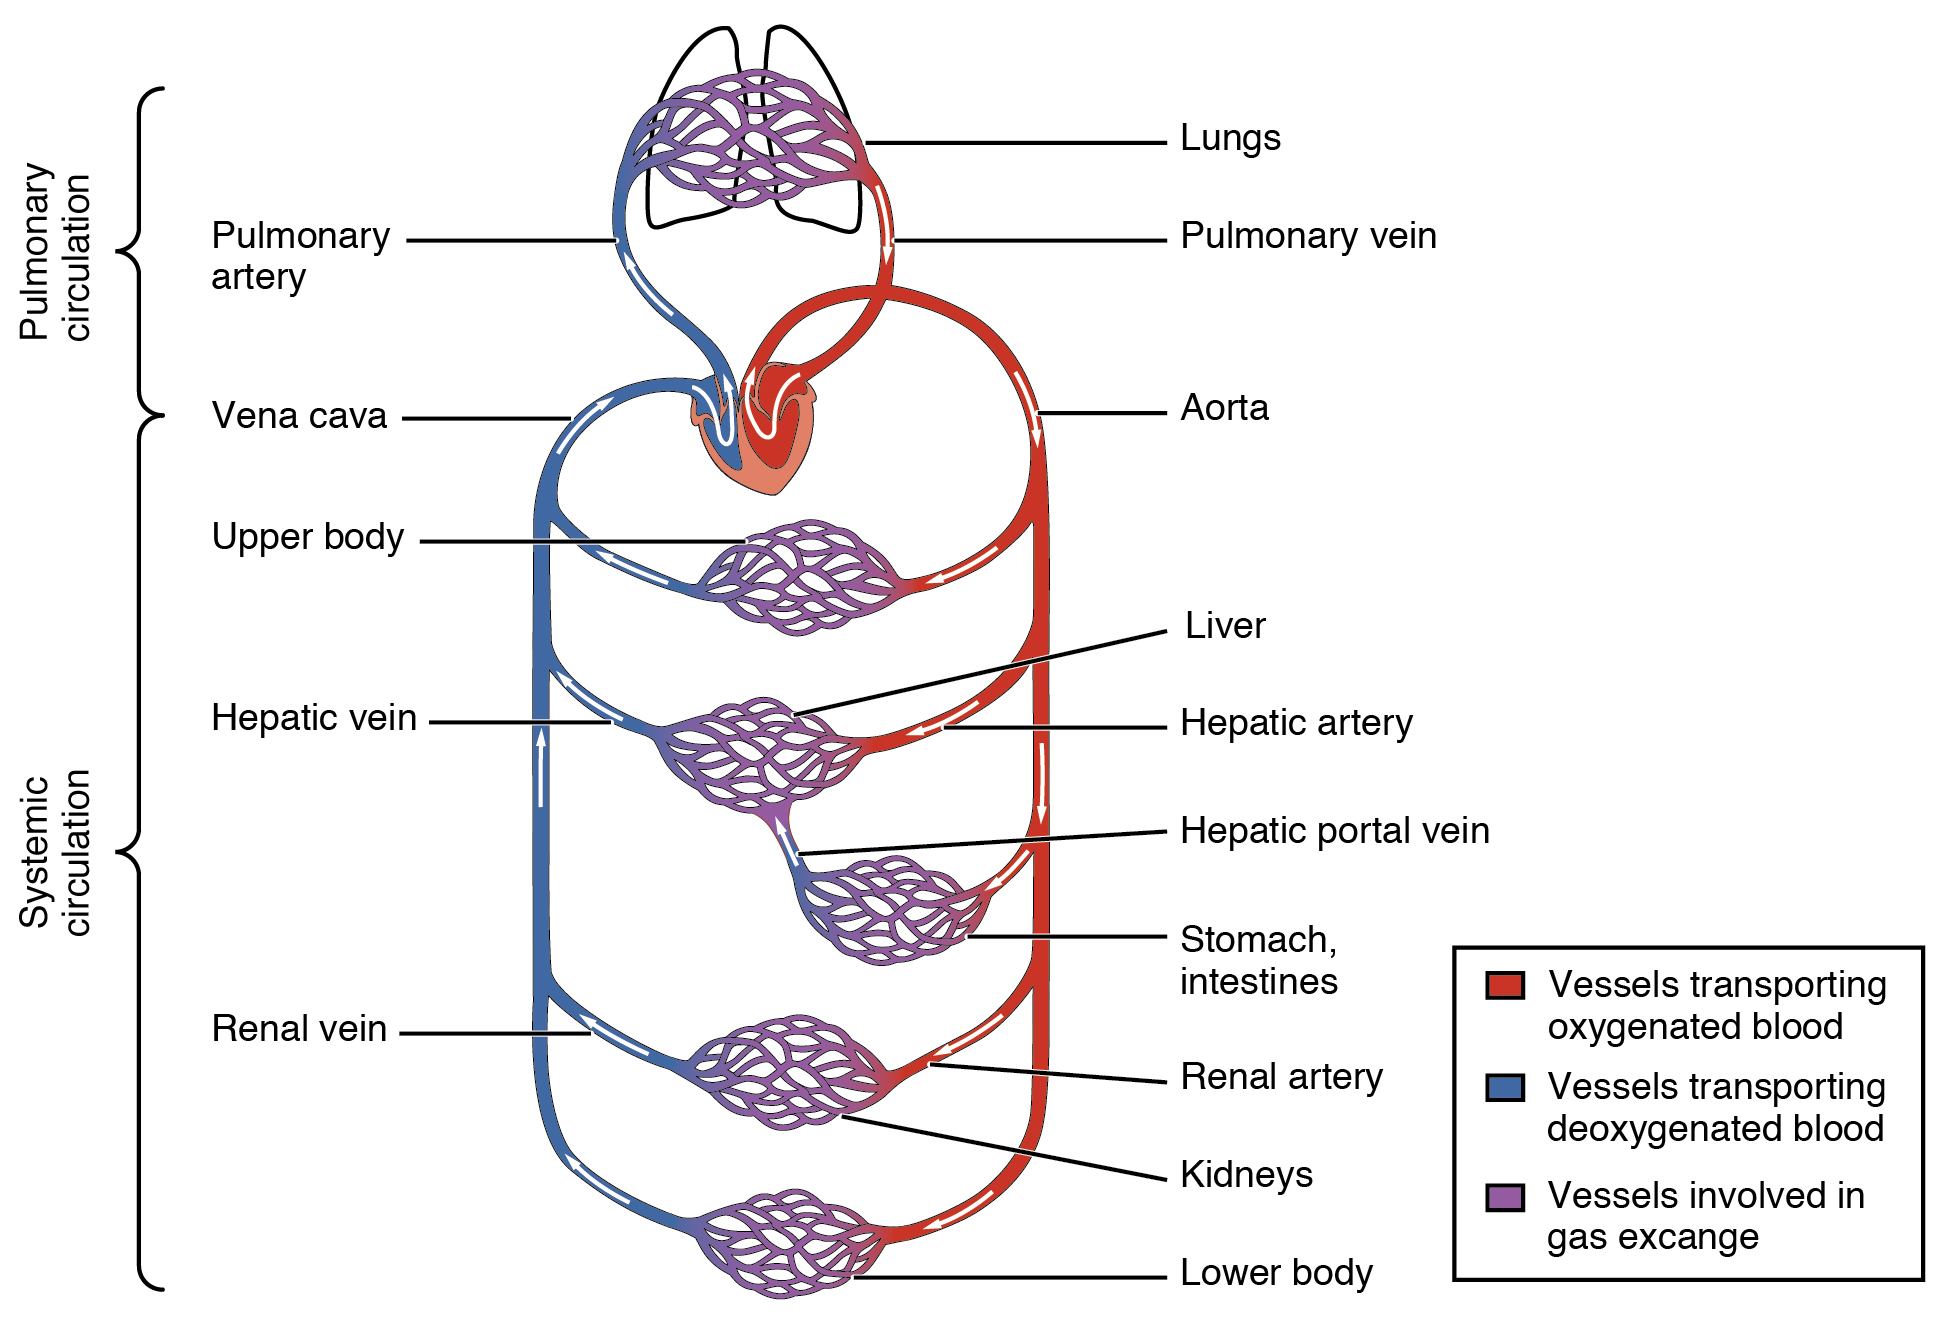 This diagram shows how oxygenated and deoxygenated blood flow through the major organs in the body.